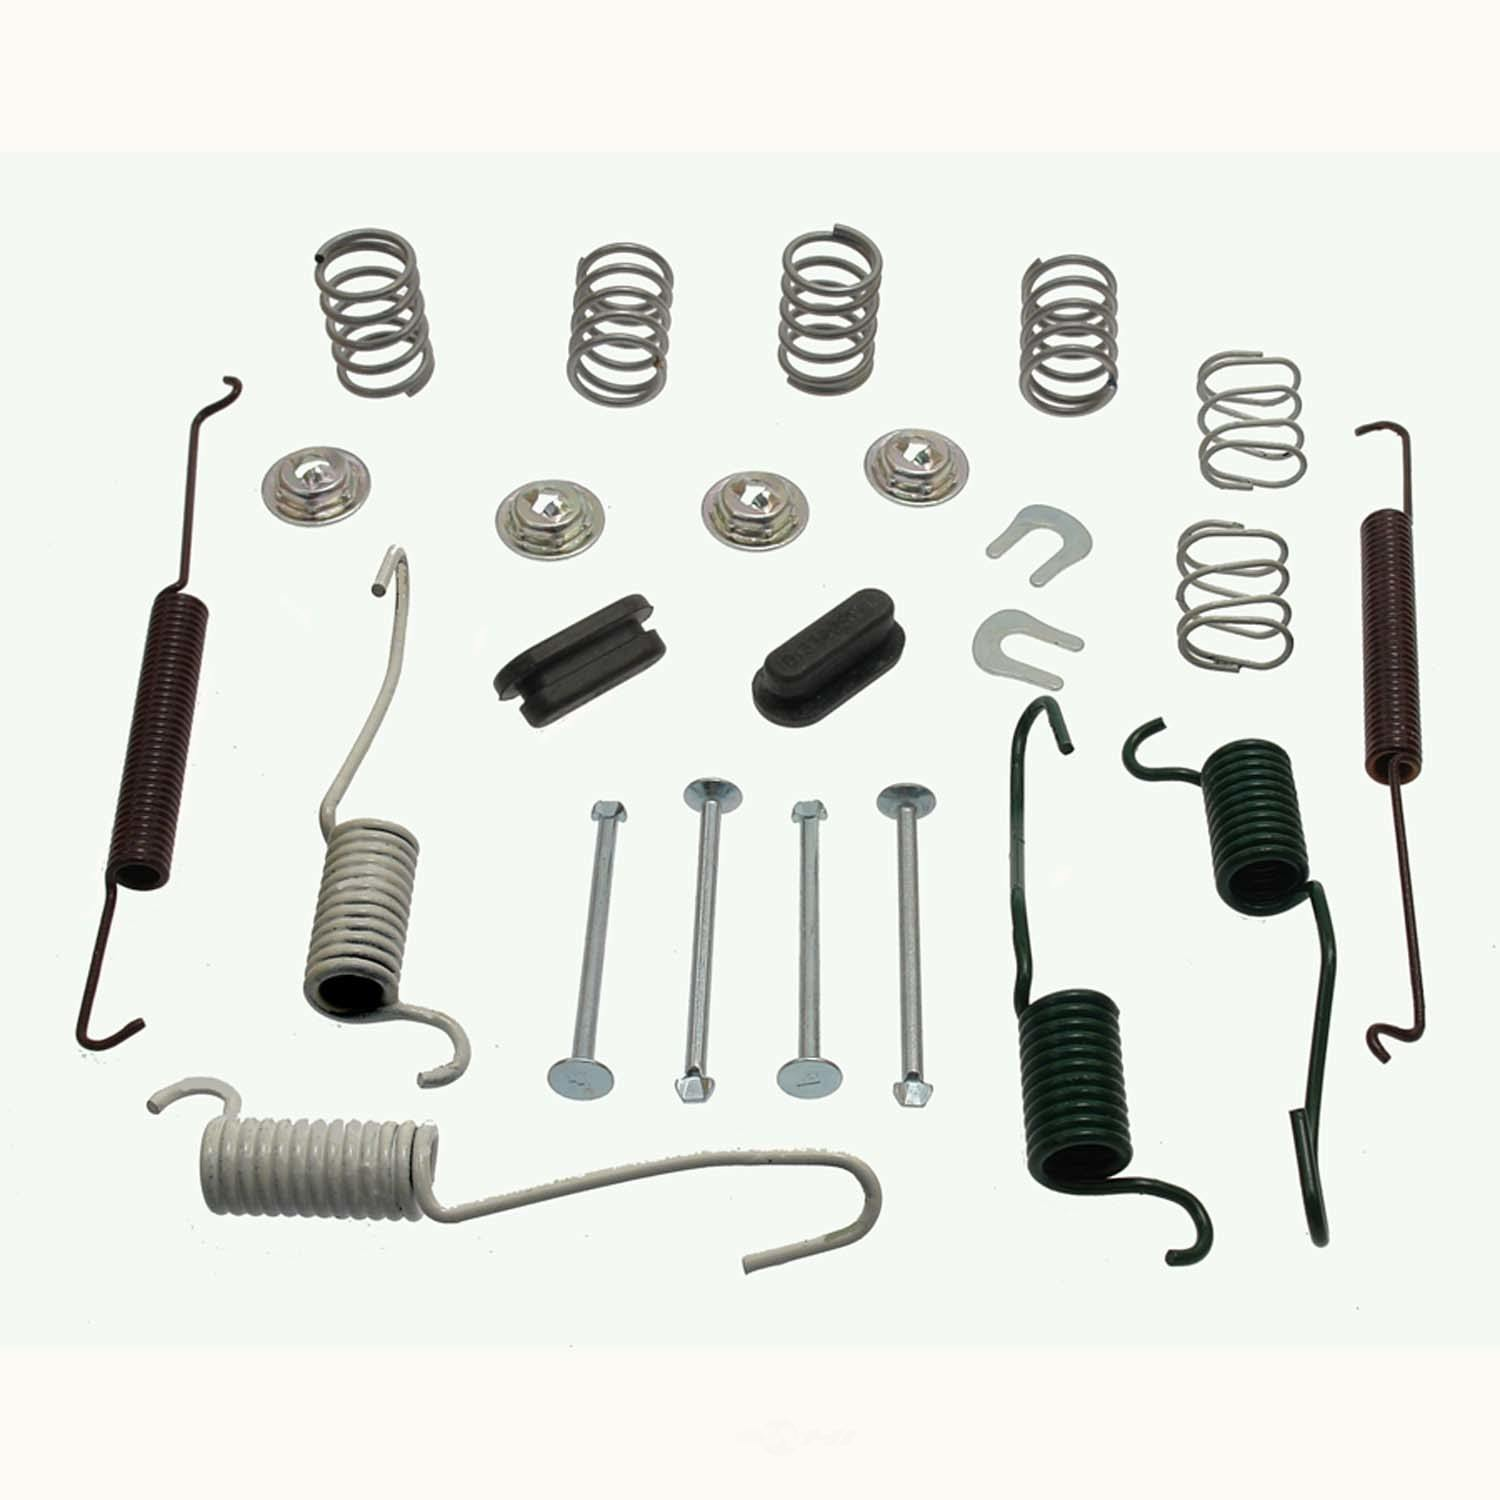 CARLSON QUALITY BRAKE PARTS - All In One Drum Brake Hardware Kit (Rear) - CRL H7294